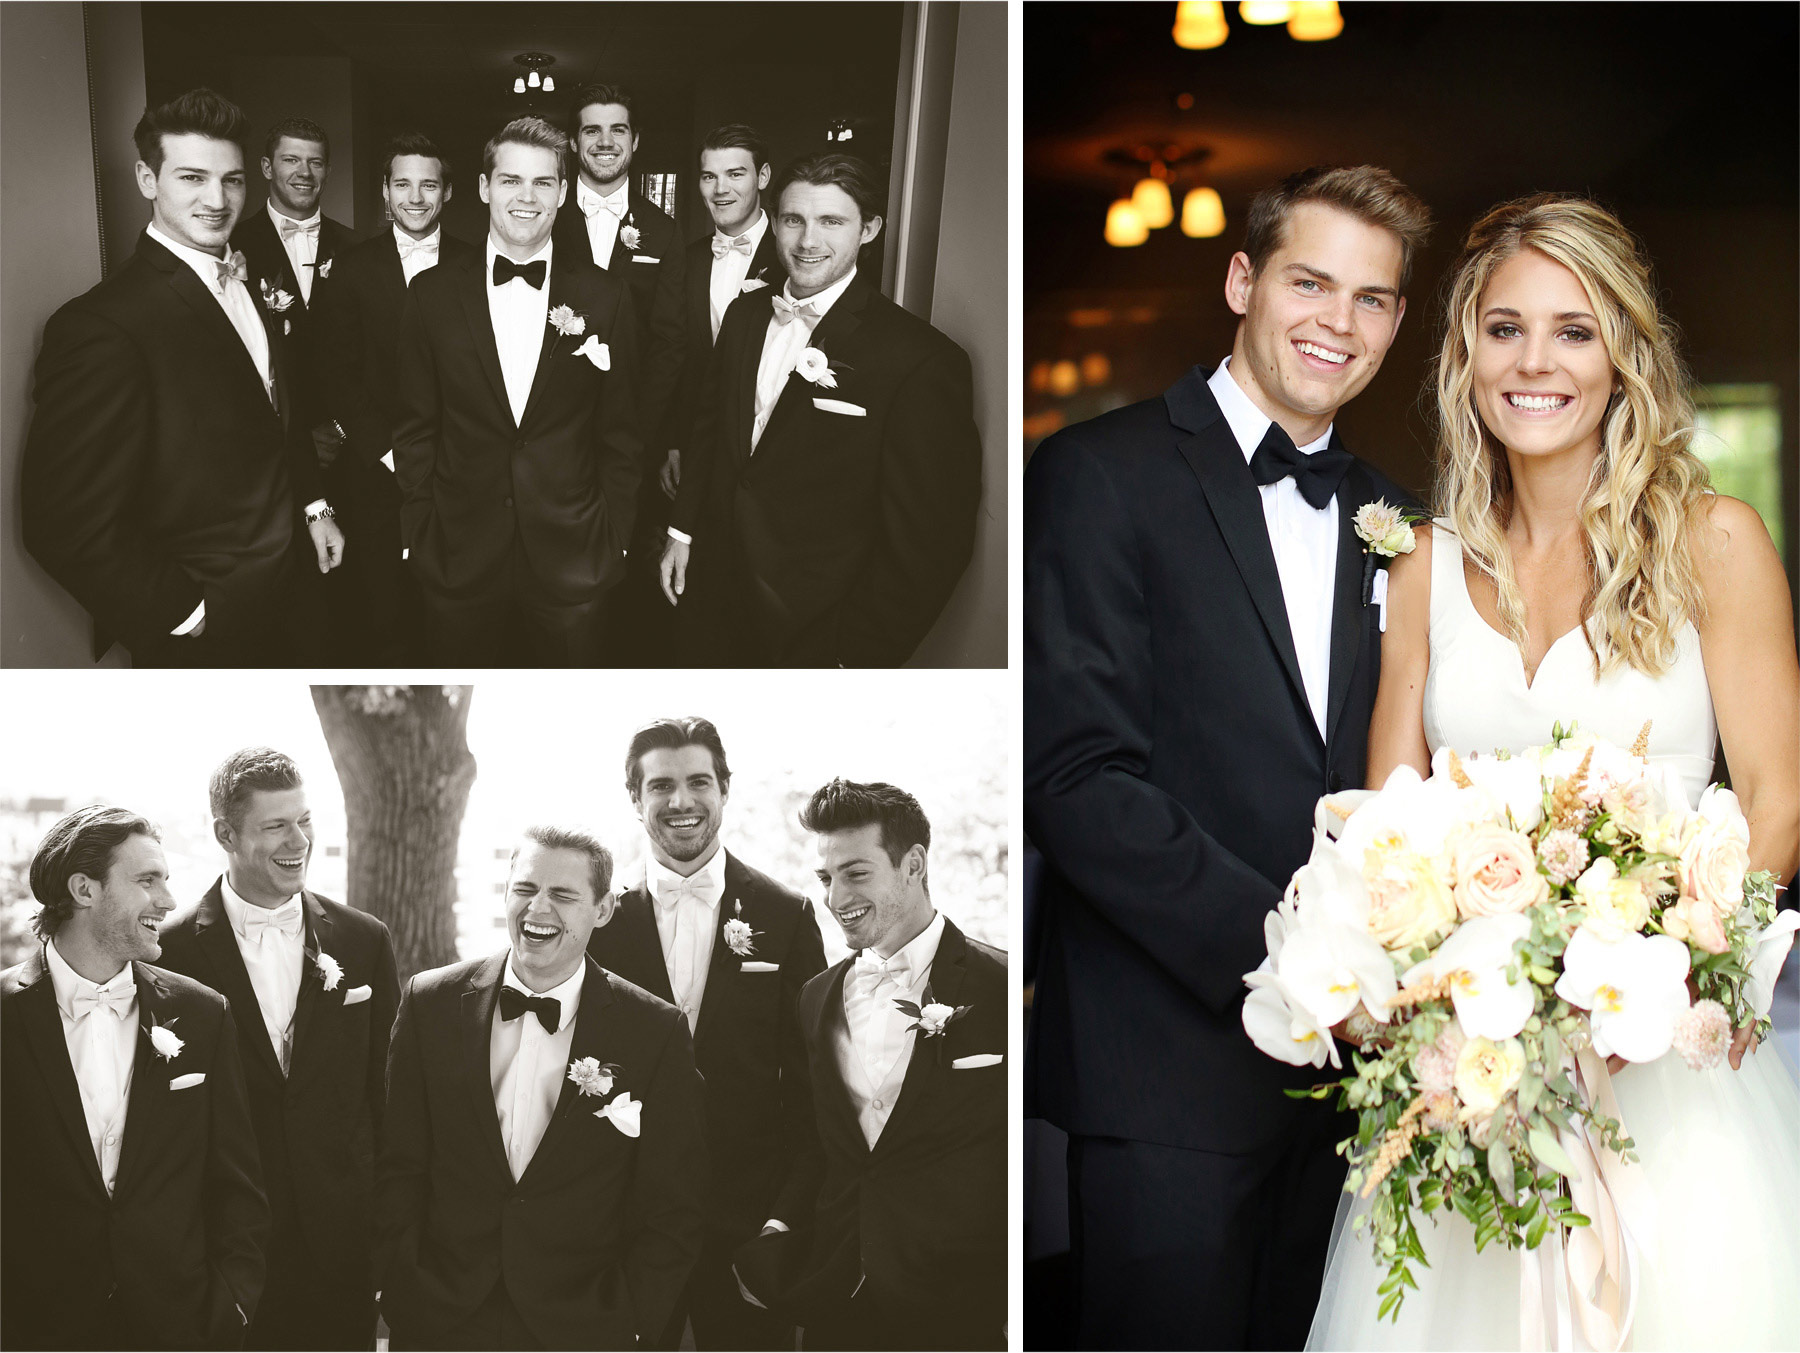 07-Minneapolis-Minnesota-Wedding-Photographer-by-Andrew-Vick-Photography-Summer-Calhoun-Beach-Club-Bride-Groom-Groomsmen-Black-and-White-Laughter-Flowers-Lexie-and-James.jpg